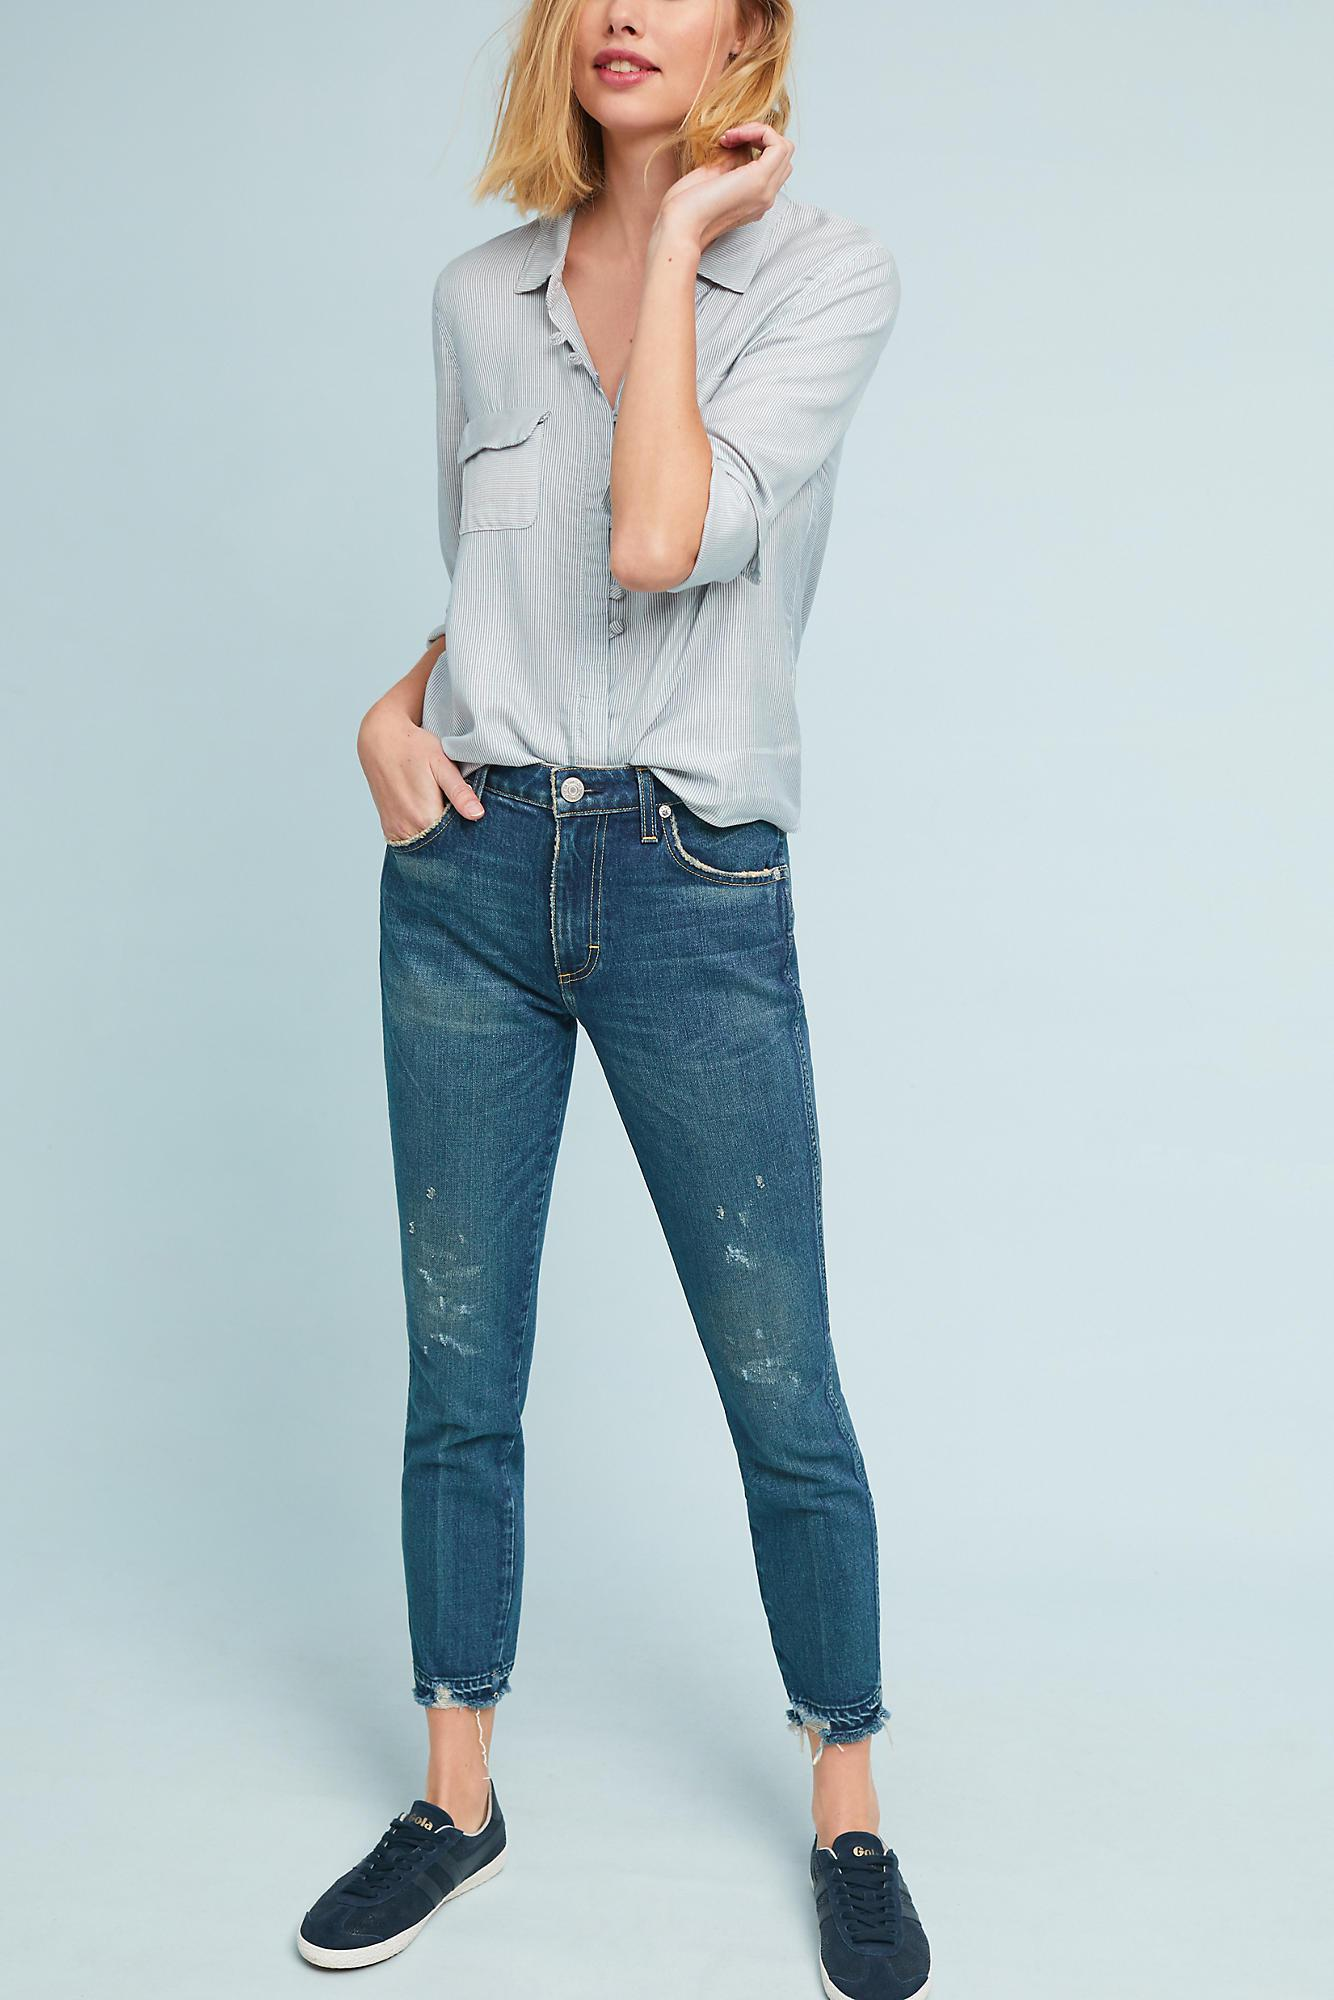 Cheap Sale Wiki Under 70 Dollars skinny cropped high-waisted jeans - Blue Amo Pre Order Cheap Price J6MQinc